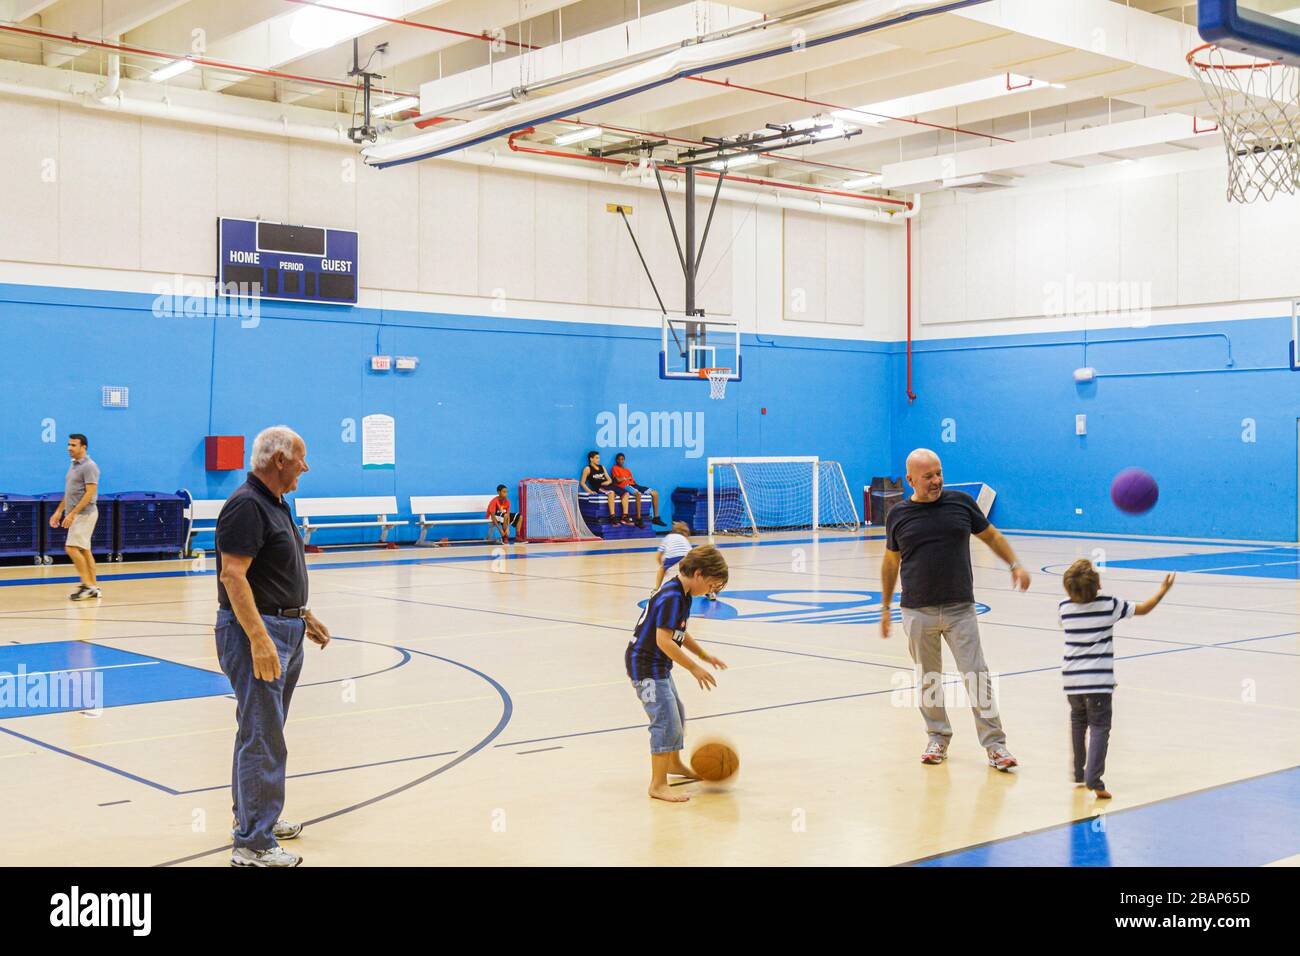 Florida Gymnasium High Resolution Stock Photography And Images Alamy